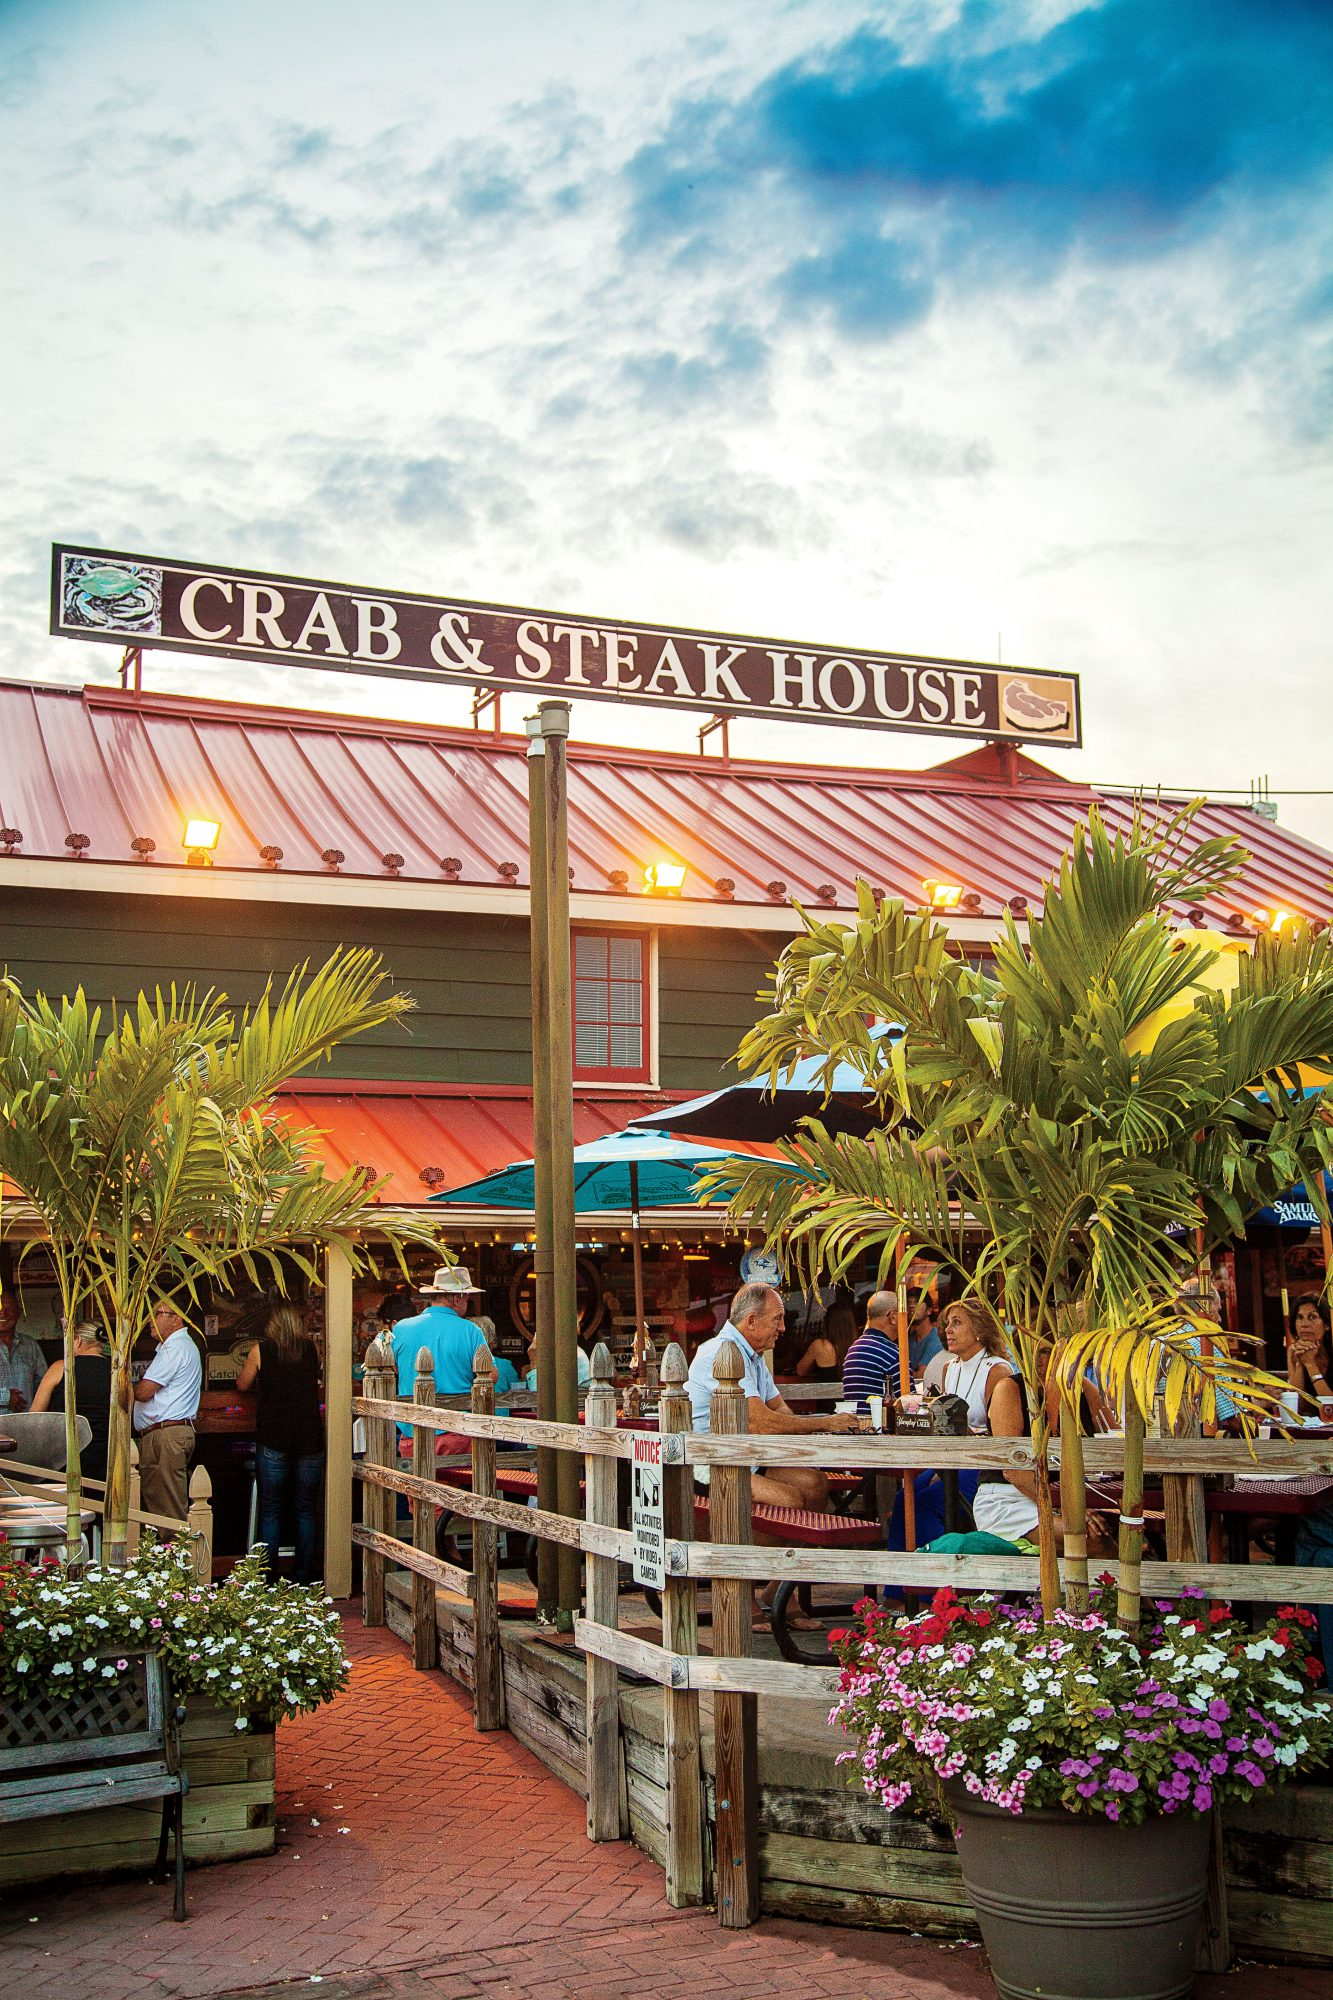 St. Michaels Crab and Steak House